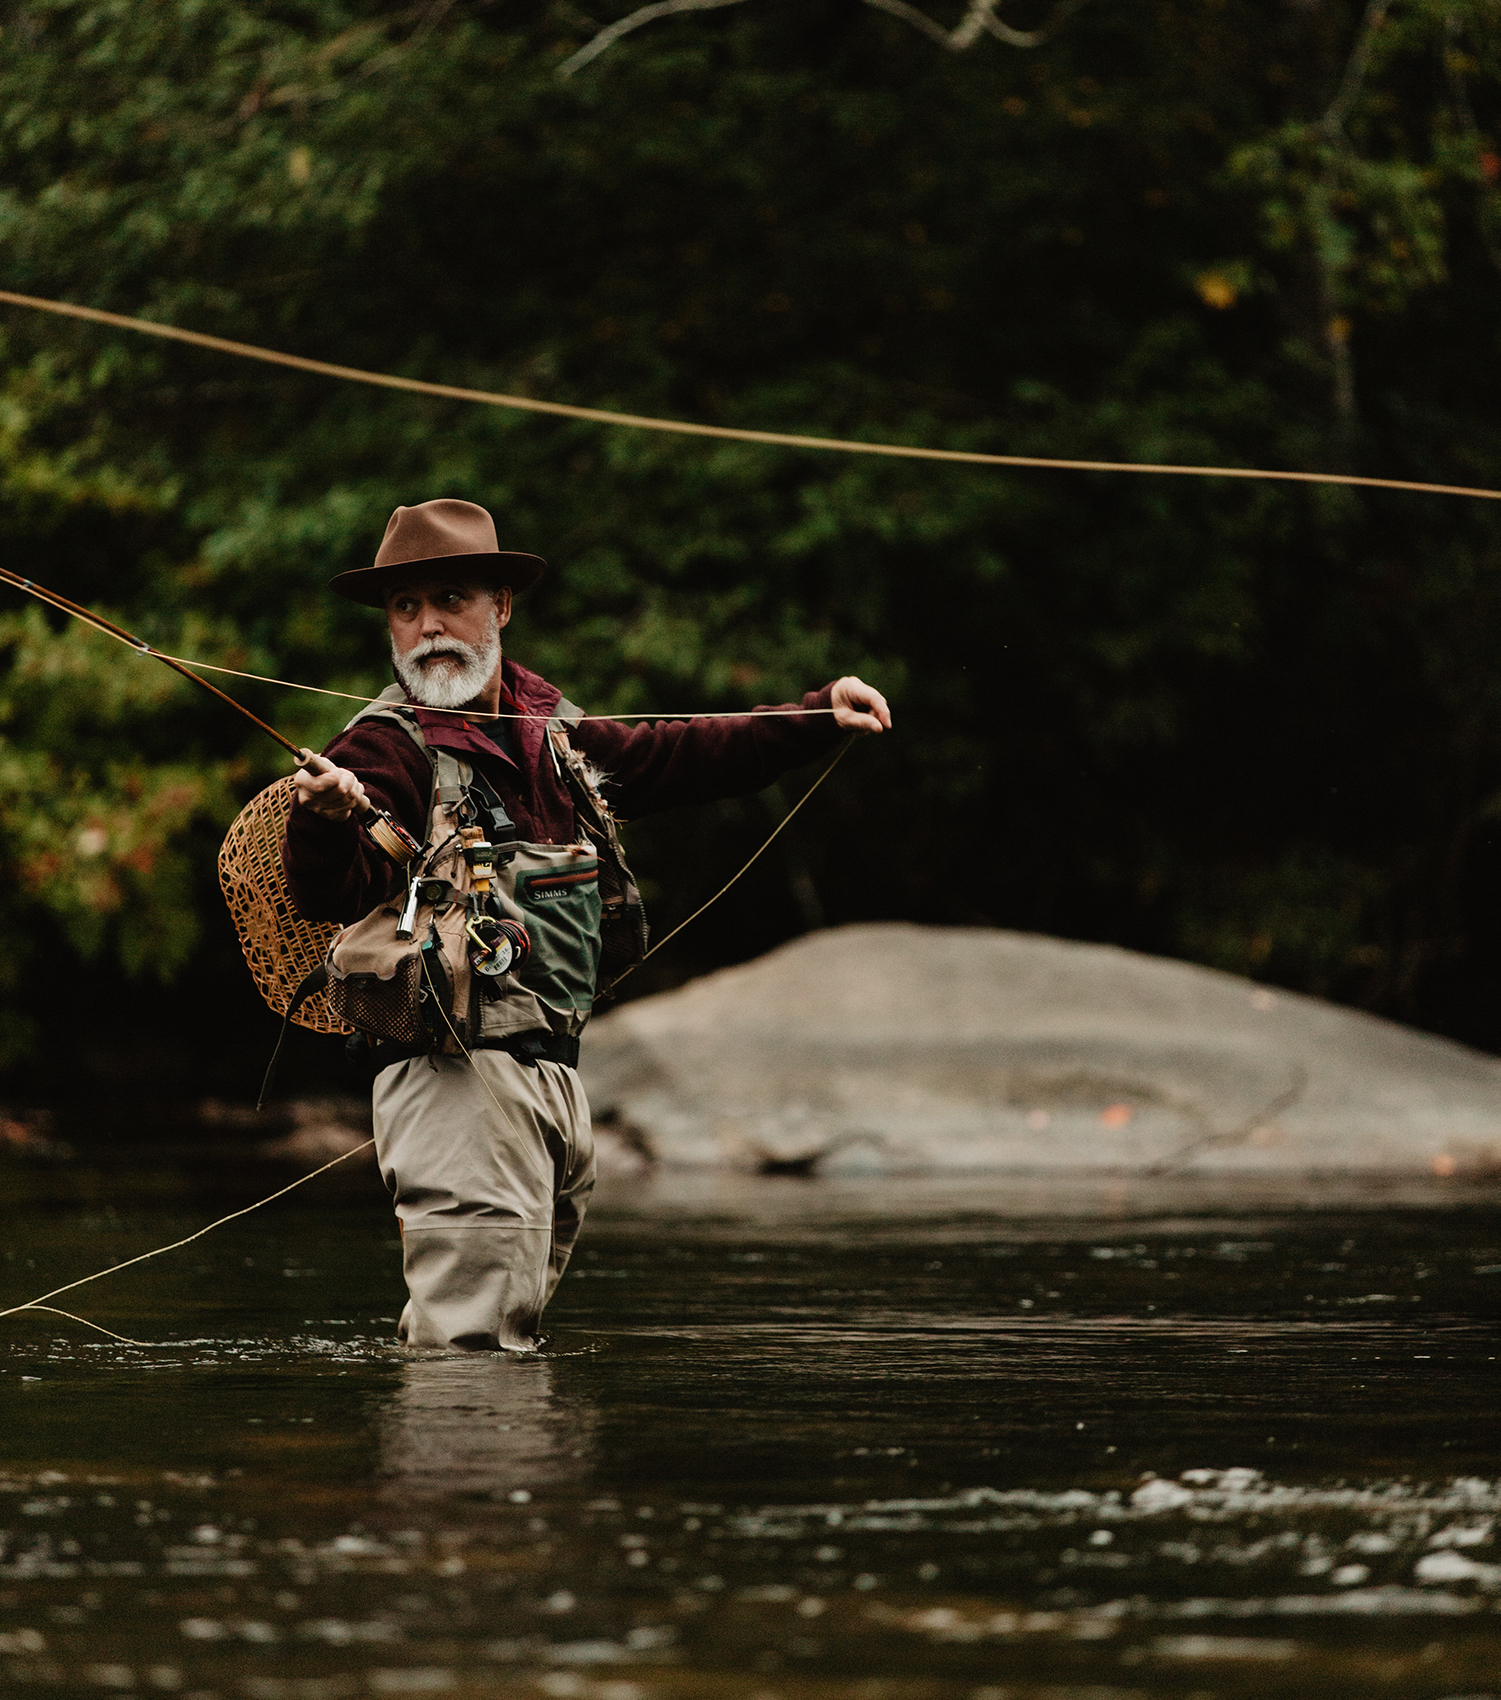 Bamboo fly rod craftsman Bill Oyster fishing in a river with the water up to his knees